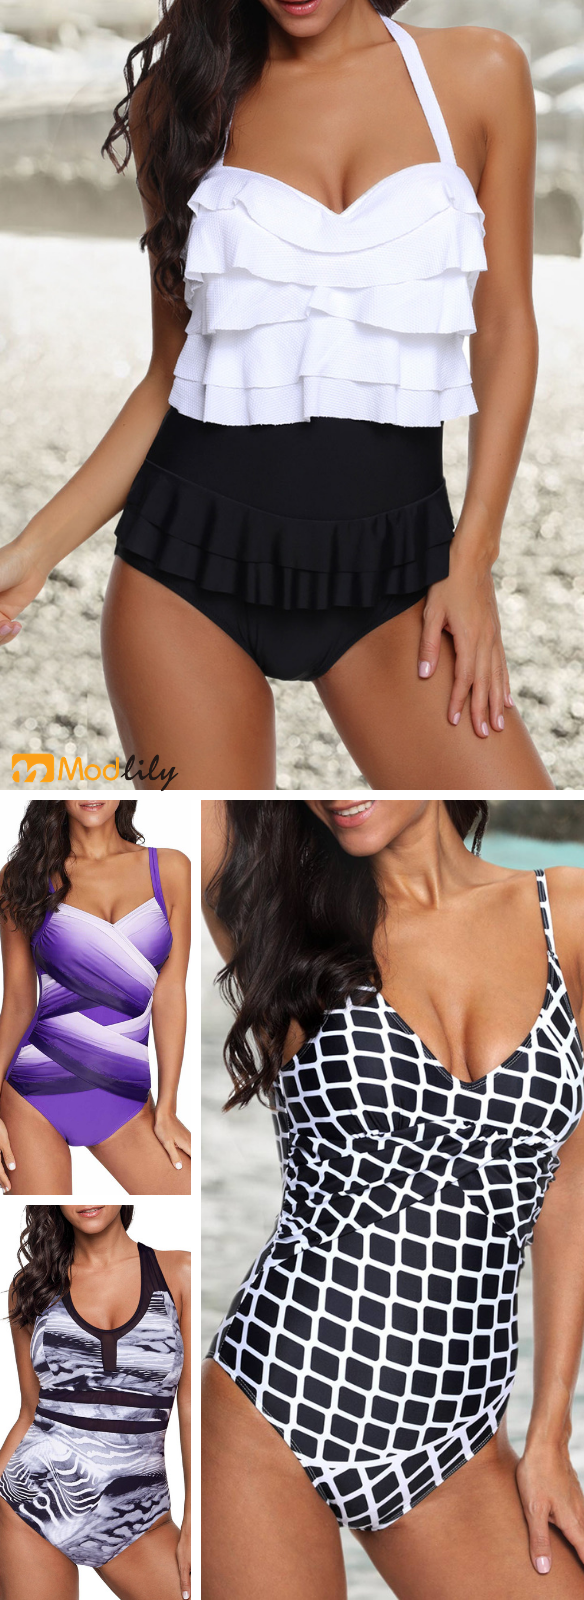 It's not just another beach trip, it will be the greatest one. Do fall in love with these amazing swimwear, same pattern, different feelings and spend a joyful vacation there! Being happy for something small, easy-going and cozy #beachvacationclothes